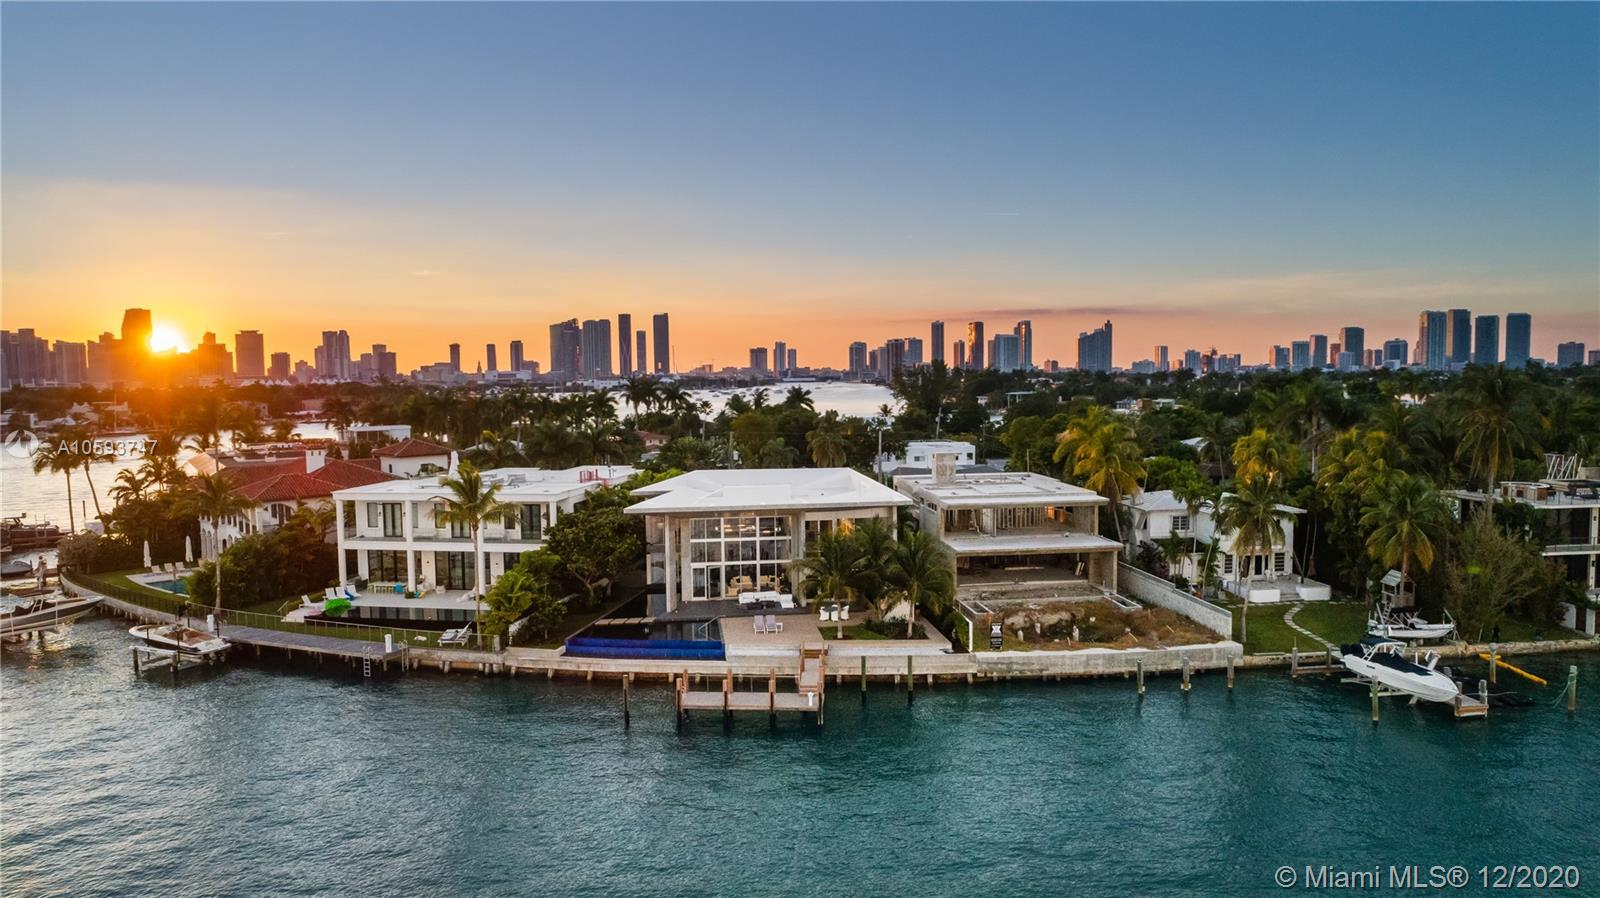 Architectural modern masterpiece and one-of-a-kind work of art on coveted Venetian Islands! The art connoisseur, interior design lover,and future owner will revel in this fully custom awe inspiring home.Boasting expansive Biscayne Bay waterfront views, soaring ceilings mixed w/cantilevered concrete & voluminous glass, floating sculpture staircase w/illuminated black quartz, unique 19ft NOA rated entry door never again replicated and interior tropical garden w/sustained irrigation system. Chef inspired enormous tailor made Snaidero kitchen & bar w/temp controlled glass wine room is an entertainers dream! In addition, each of the 5 bedrooms have en suite baths & fully built out custom closets, 2 separate family rooms w/incredible views, commercial grade elevator, and 3 car collectors garage